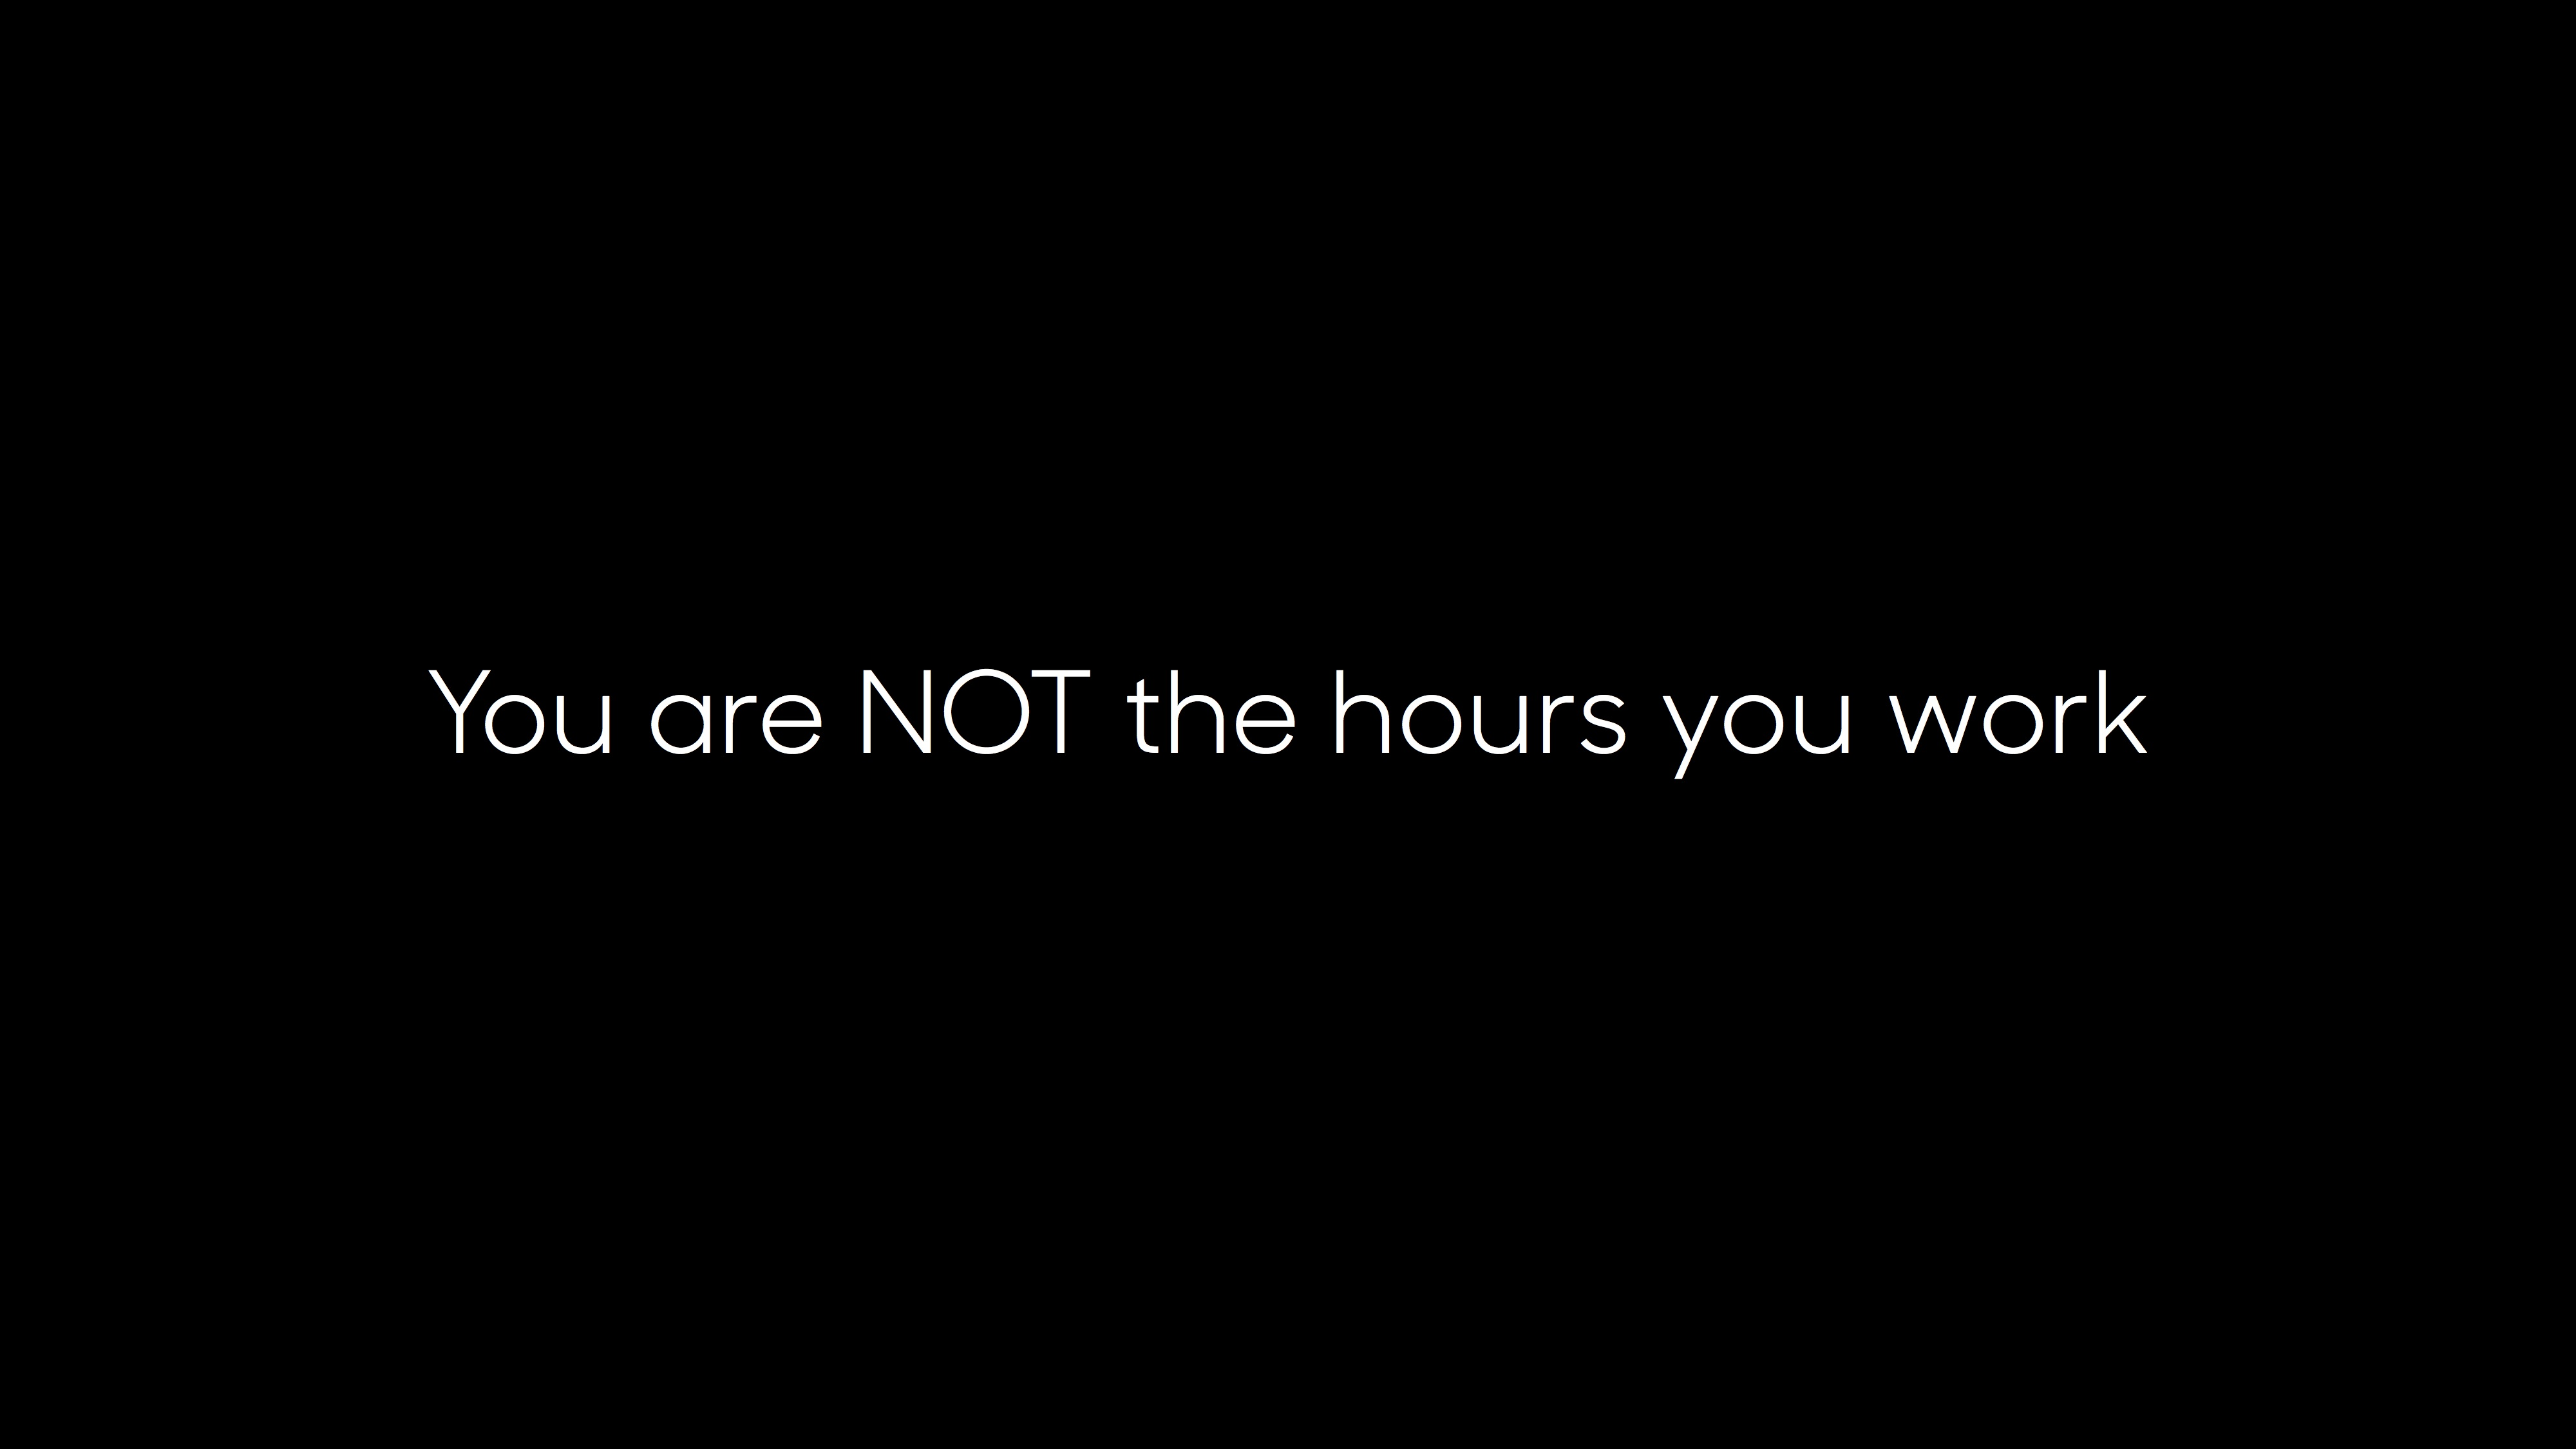 hours-you-work